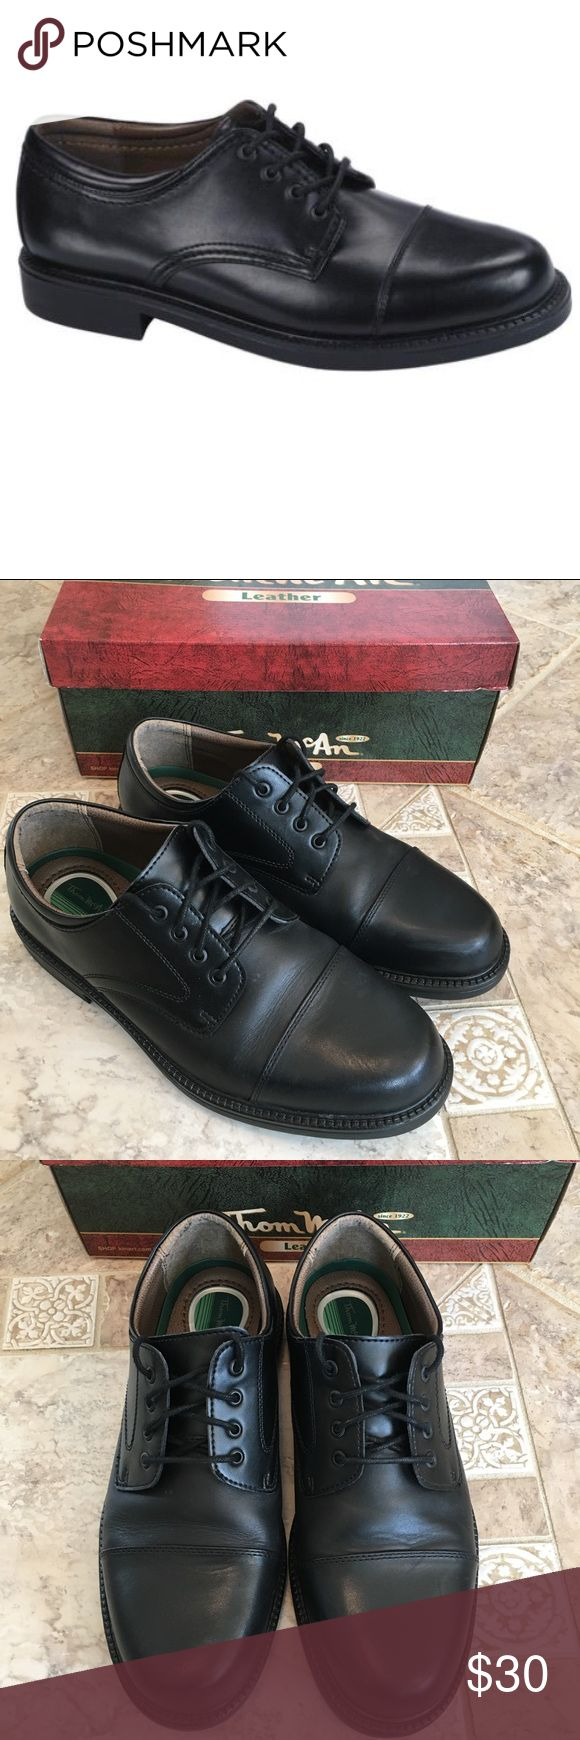 Men's black leather dress shoes Men's black leather cap toe oxford. Crafted from smooth black leather, these lace-up shoes feature a stylish cap toe and a slight block heel. Cushioned heel. Worn twice.  Excellent condition. Box included. Size 10 wide. Thom McAn Shoes Oxfords & Derbys